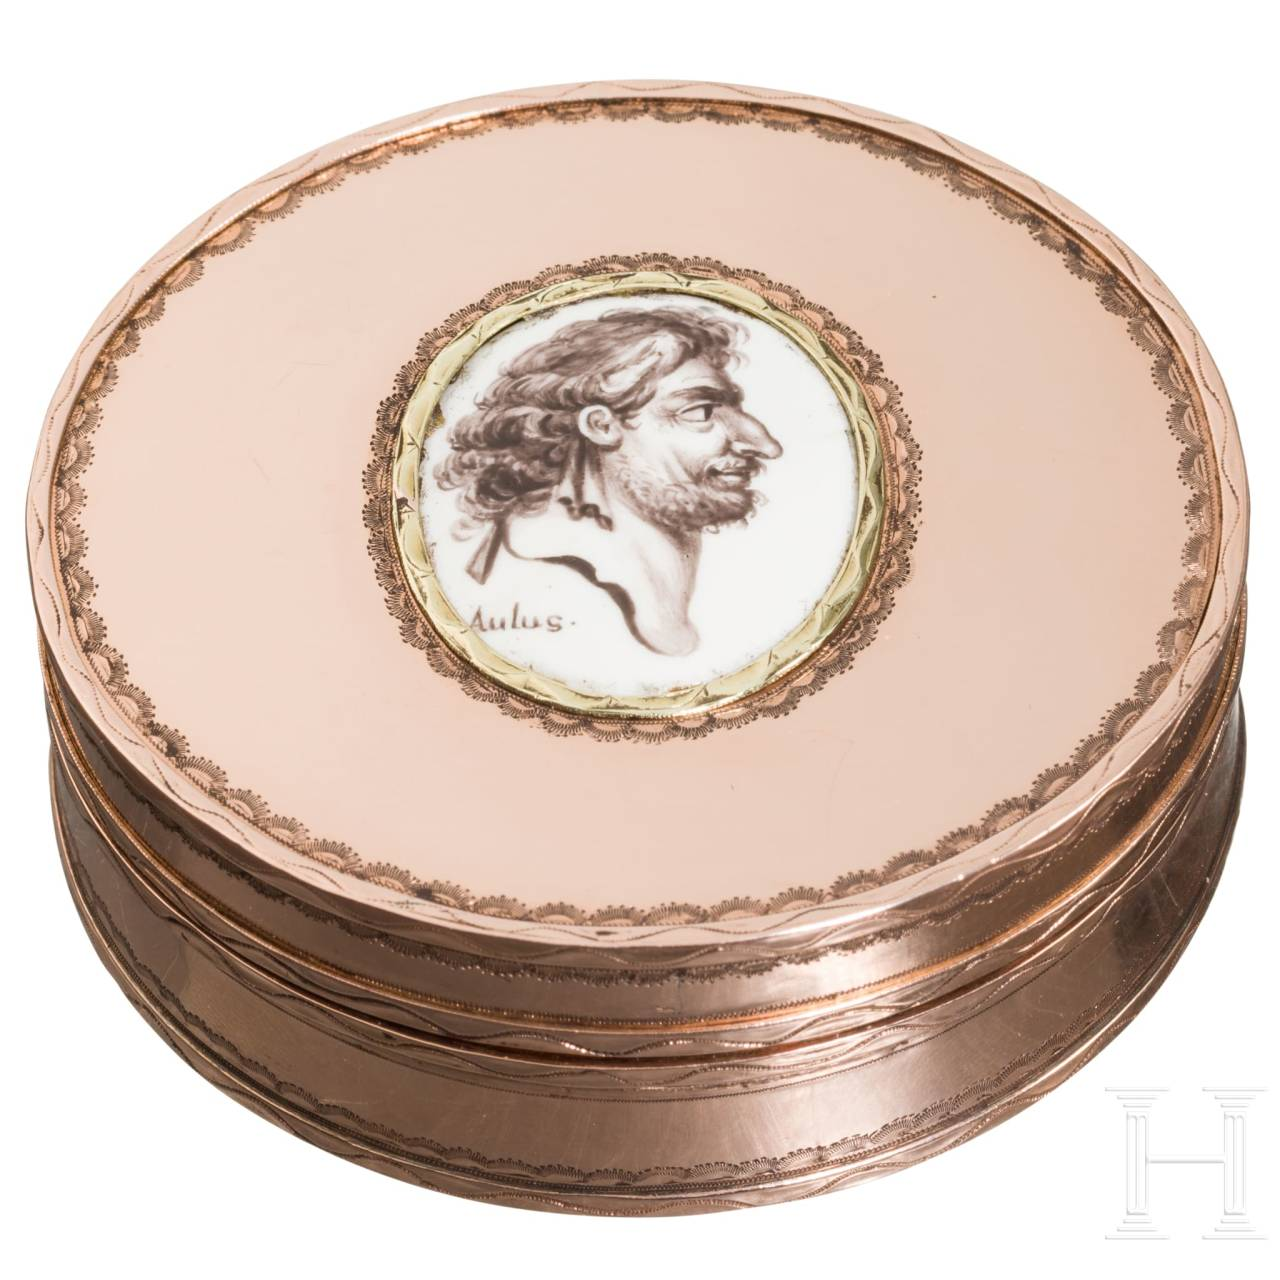 A French courtly pillbox with a portrait of the physician Aulus Cornelius Celsus, 18th century, from the estate of the grand dukes of Baden-Baden